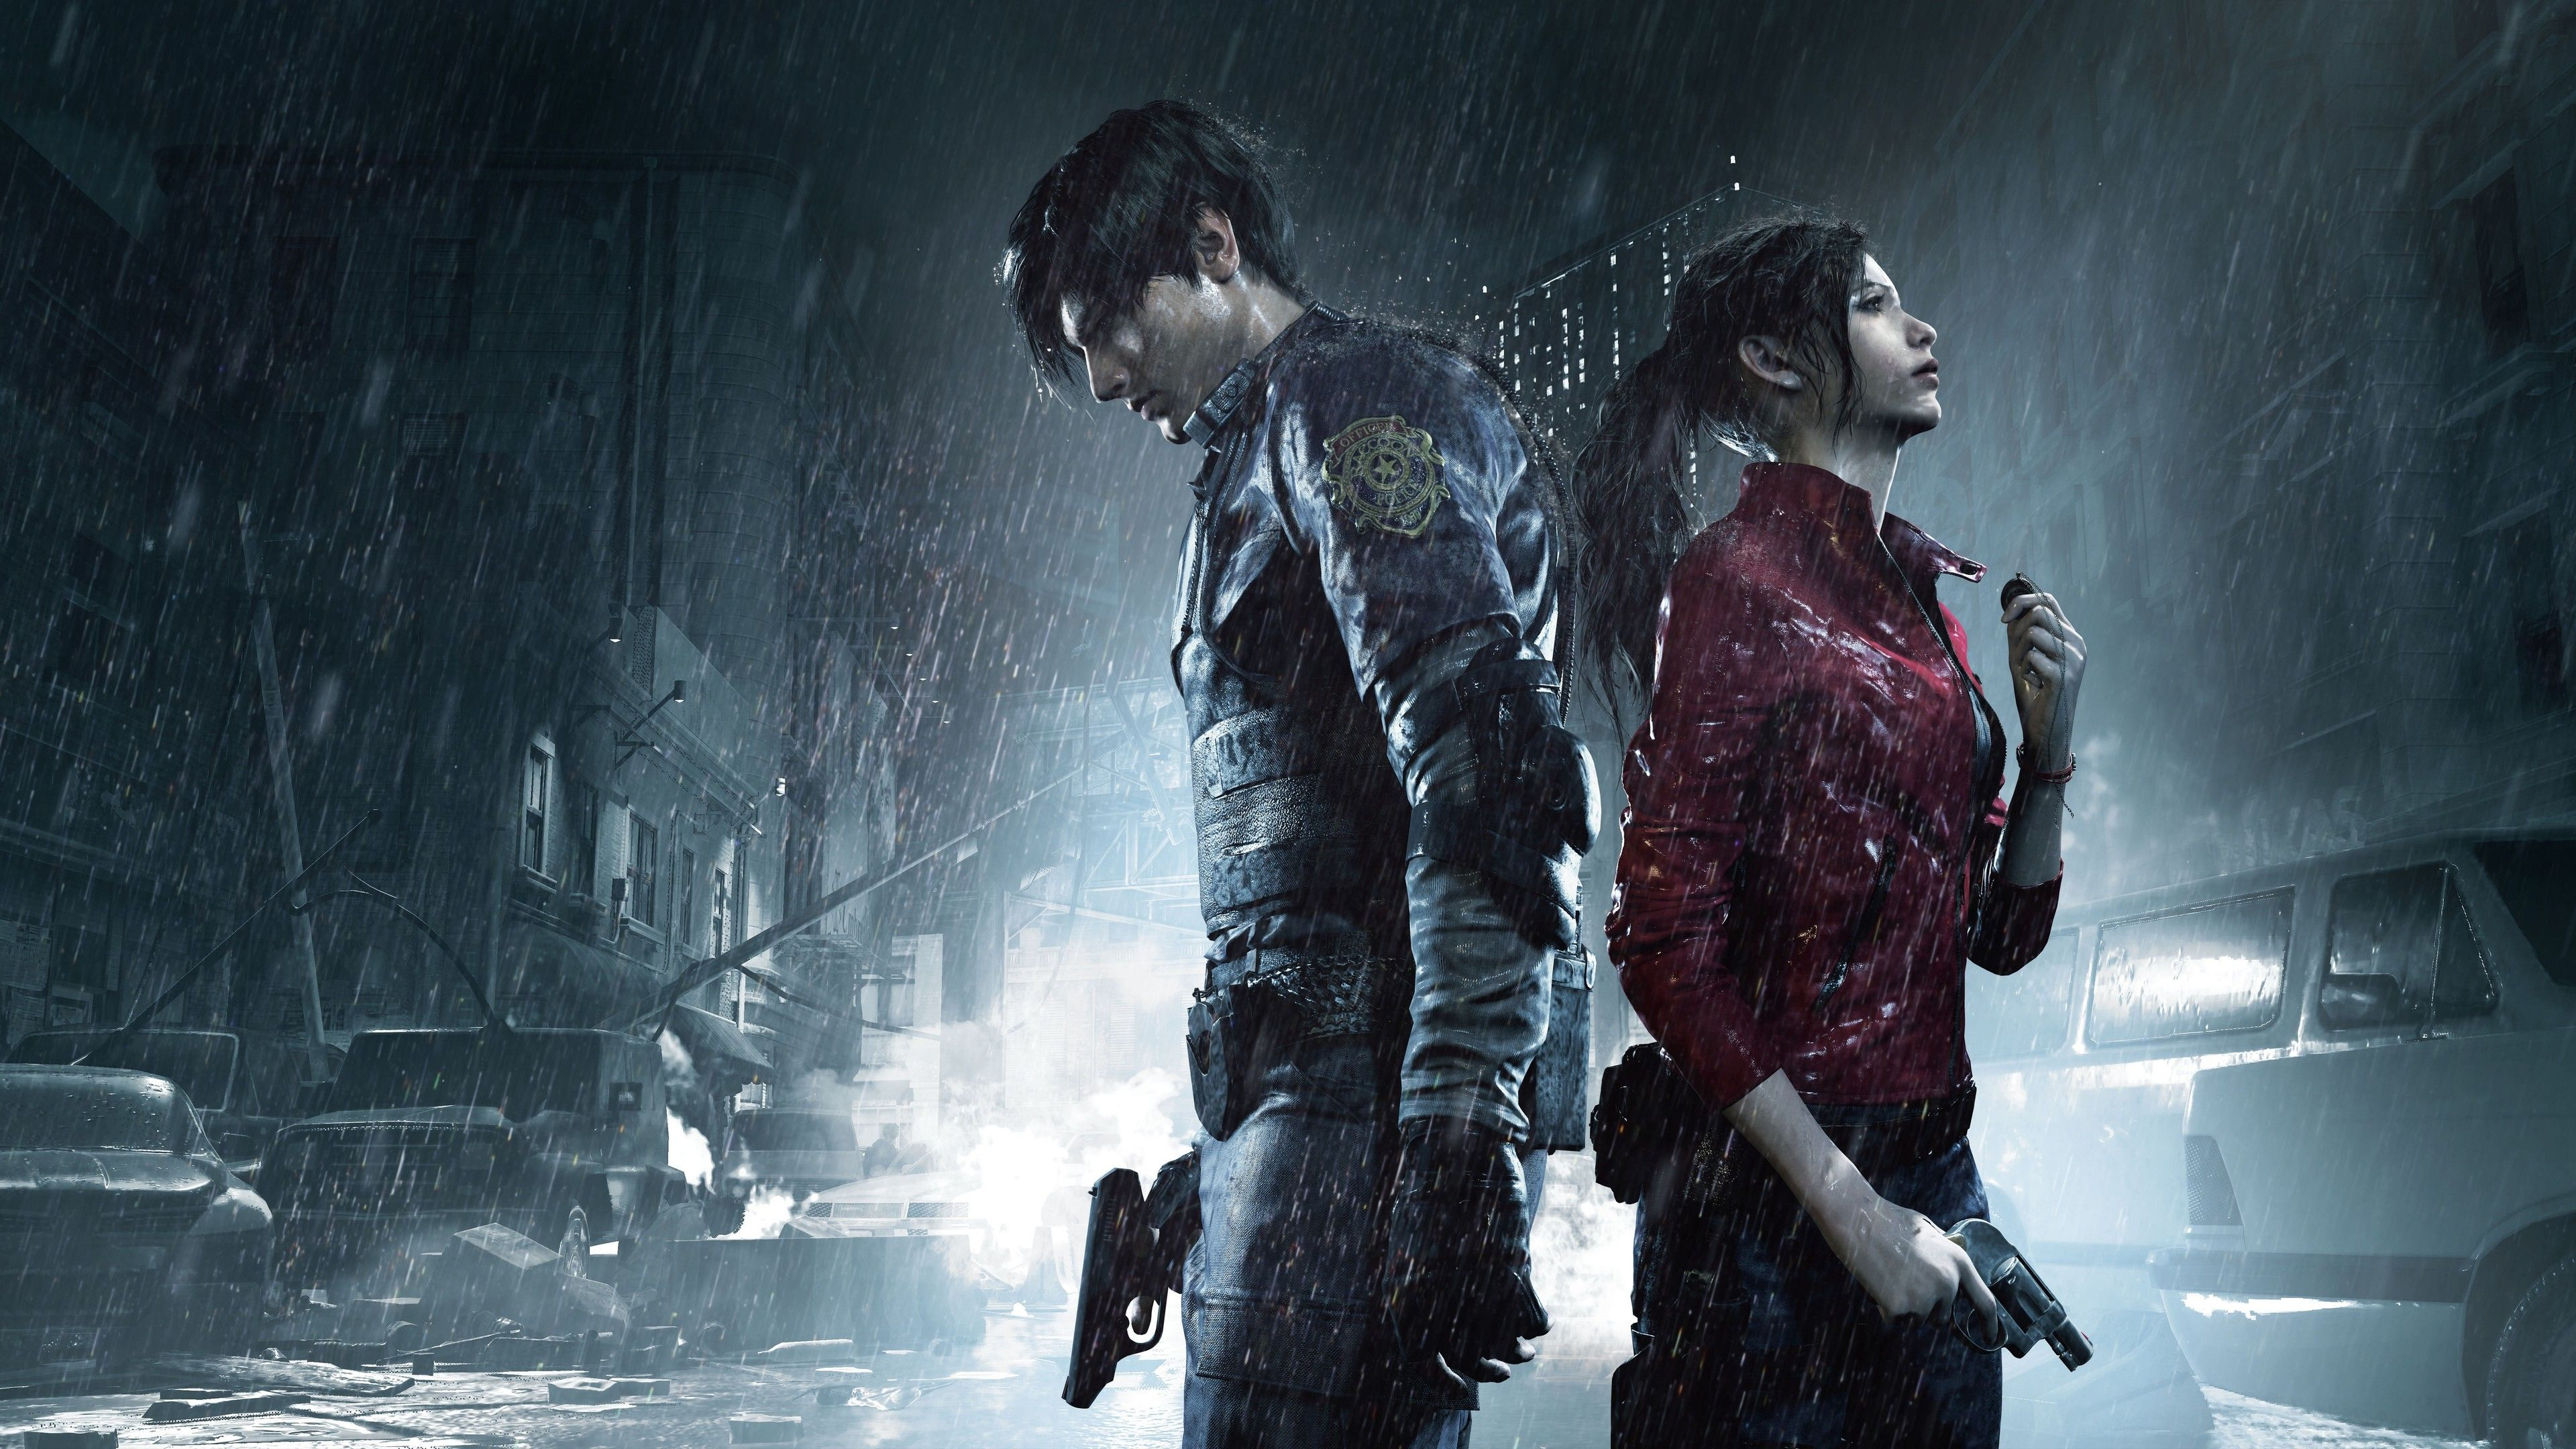 Resident Evil 2 2019 4k Resident Evil 2 Wallpapers Hd Wallpapers Games Wallpapers 4k Wallpapers 2019 Resident Evil Resident Evil Movie Monster Hunter World